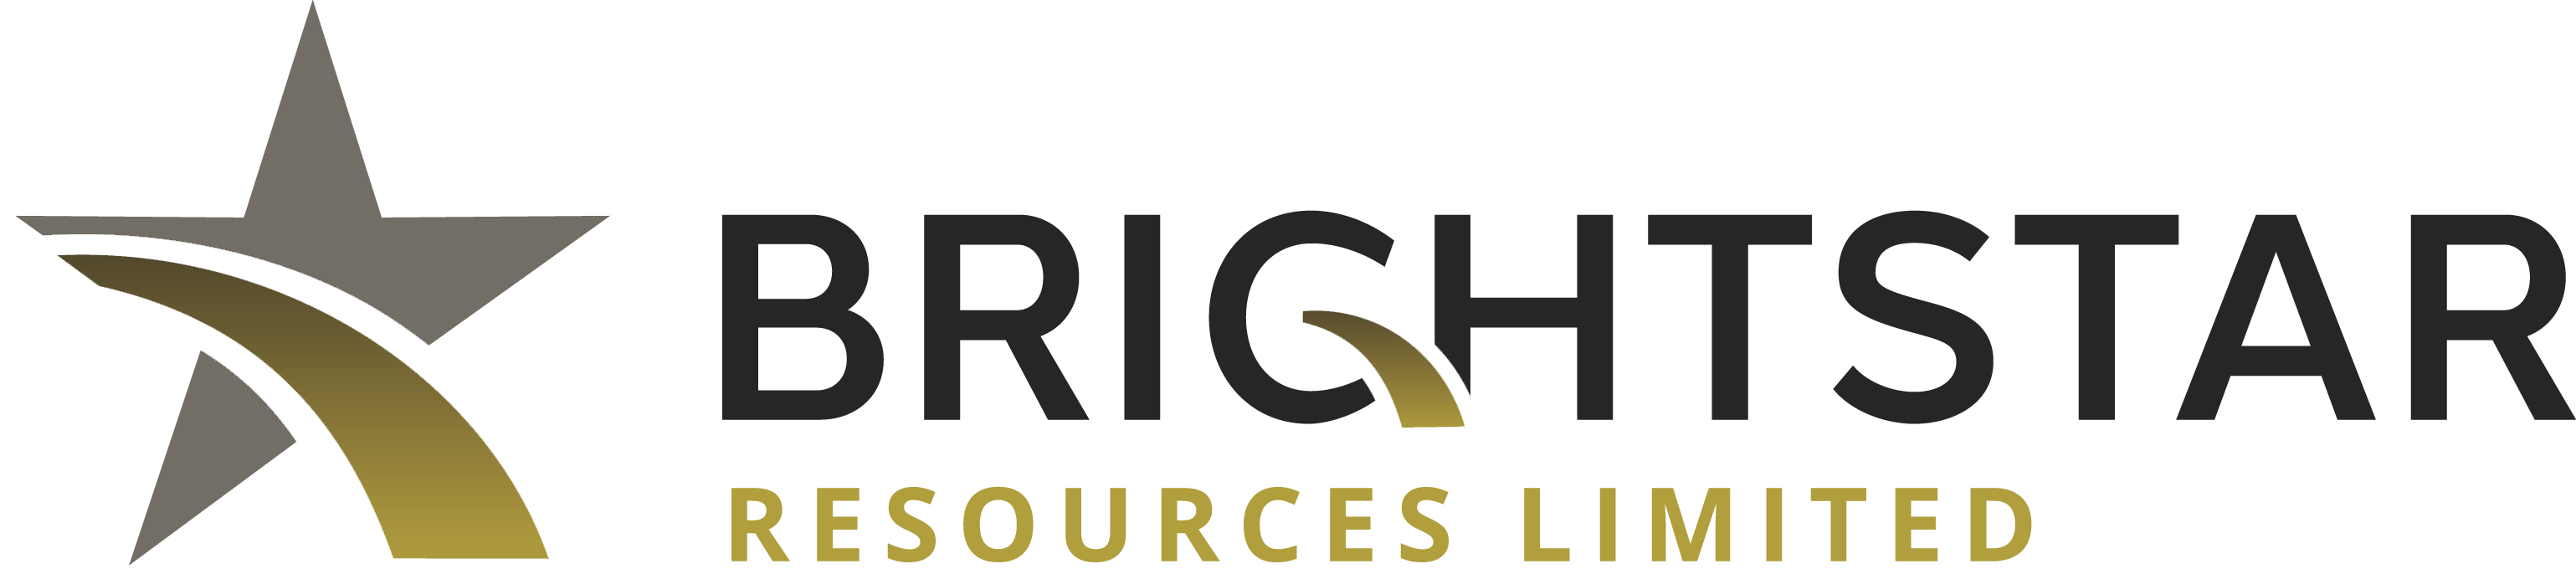 Brightstar Resources Limited